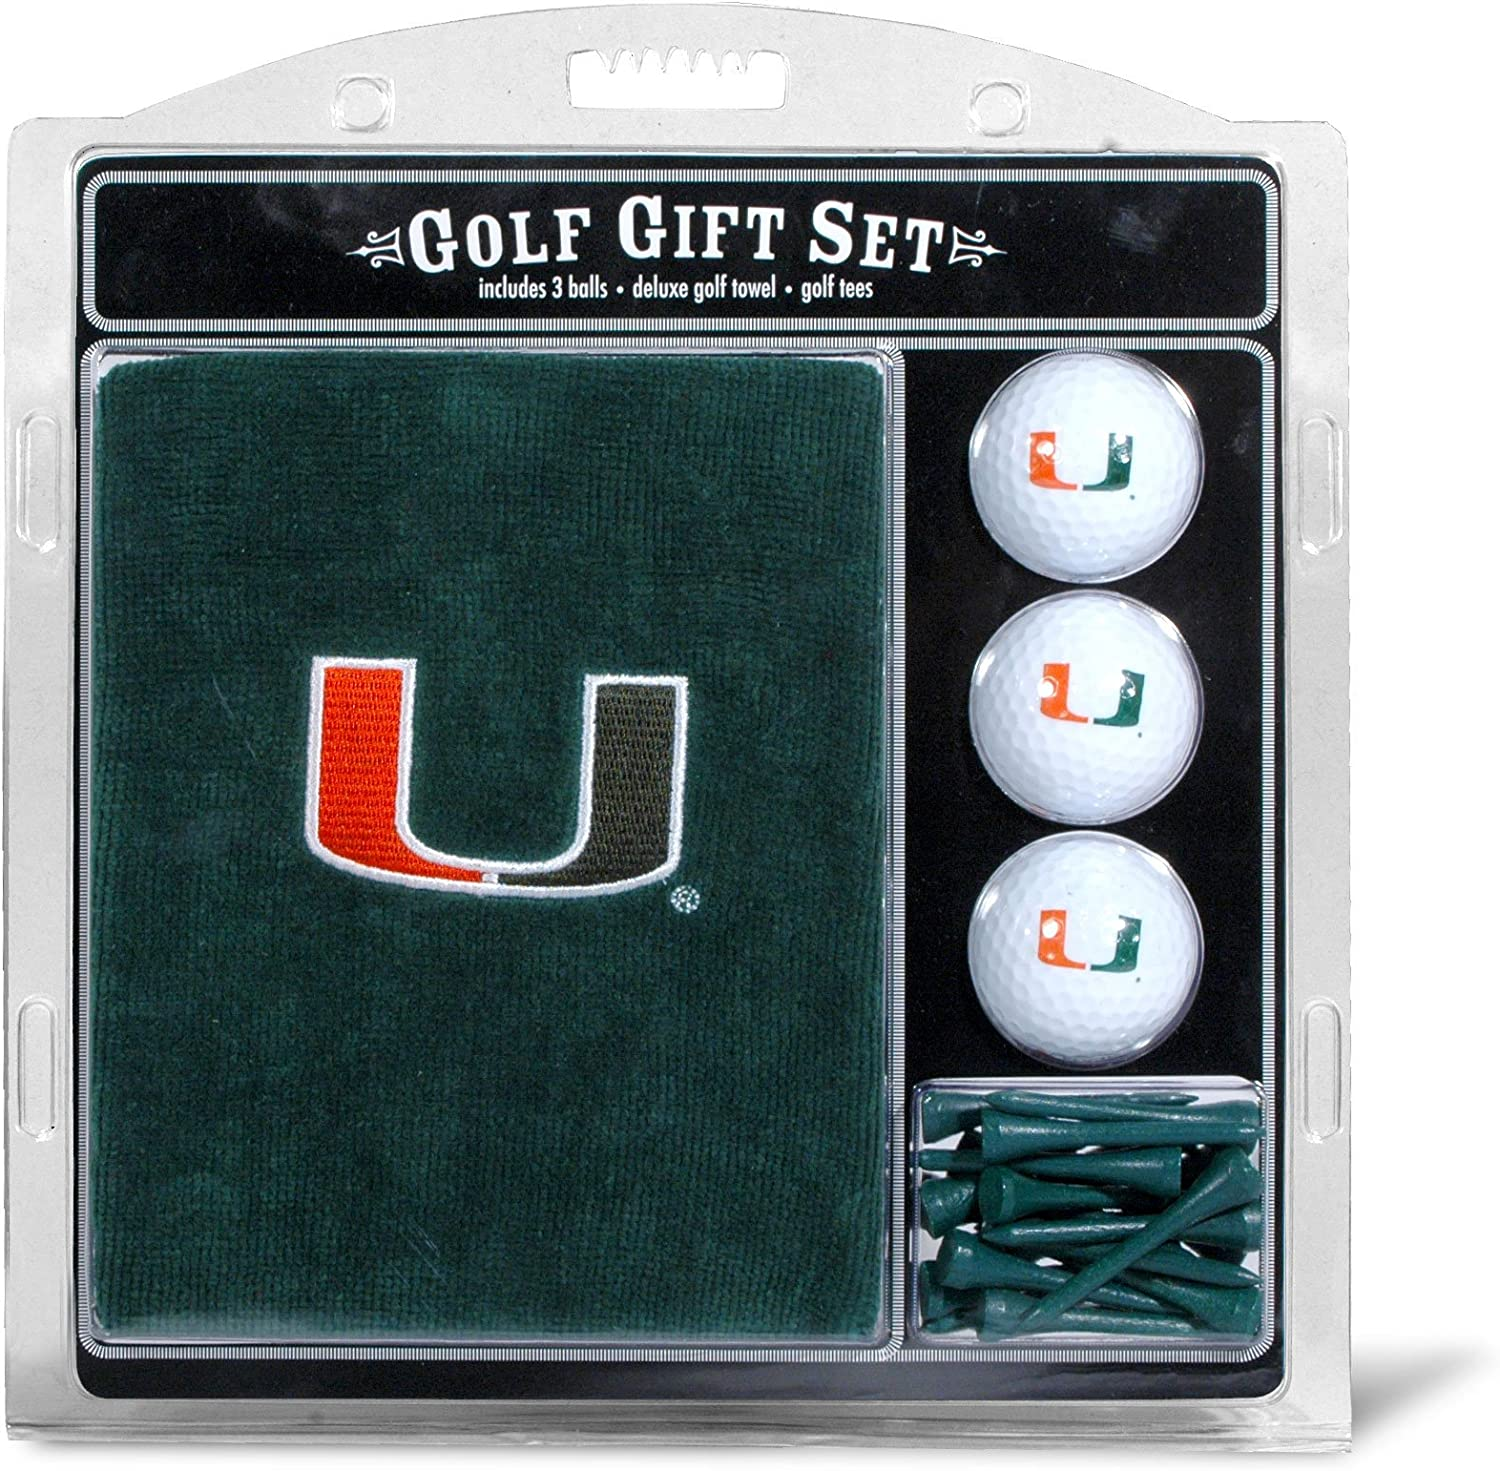 "Team Golf NCAA Gift Set Embroidered Golf Towel, 3 Golf Balls, and 14 Golf Tees 2-3/4"" Regulation, Tri-Fold Towel 16"" x 22"" & 100% Cotton"